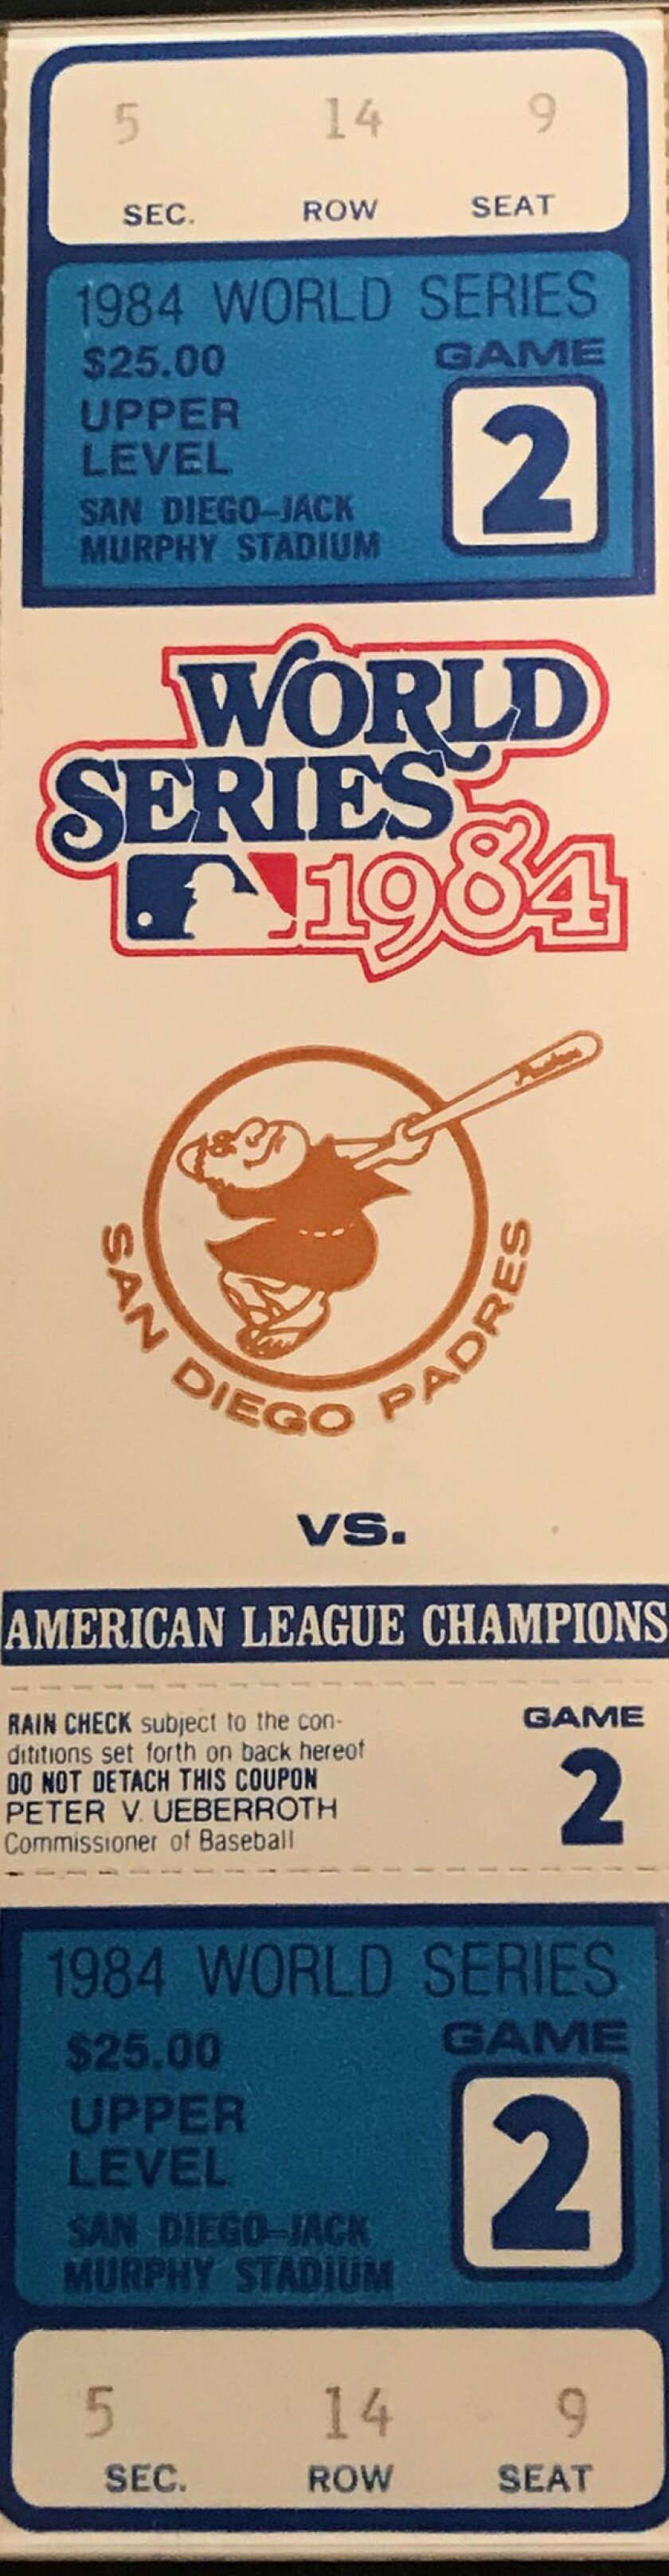 An unused ticket from Game 2 of the 1984 World Series. The Padres defeated the Detroit Tigers 5-3 at San Diego Jack Murphy Stadium.